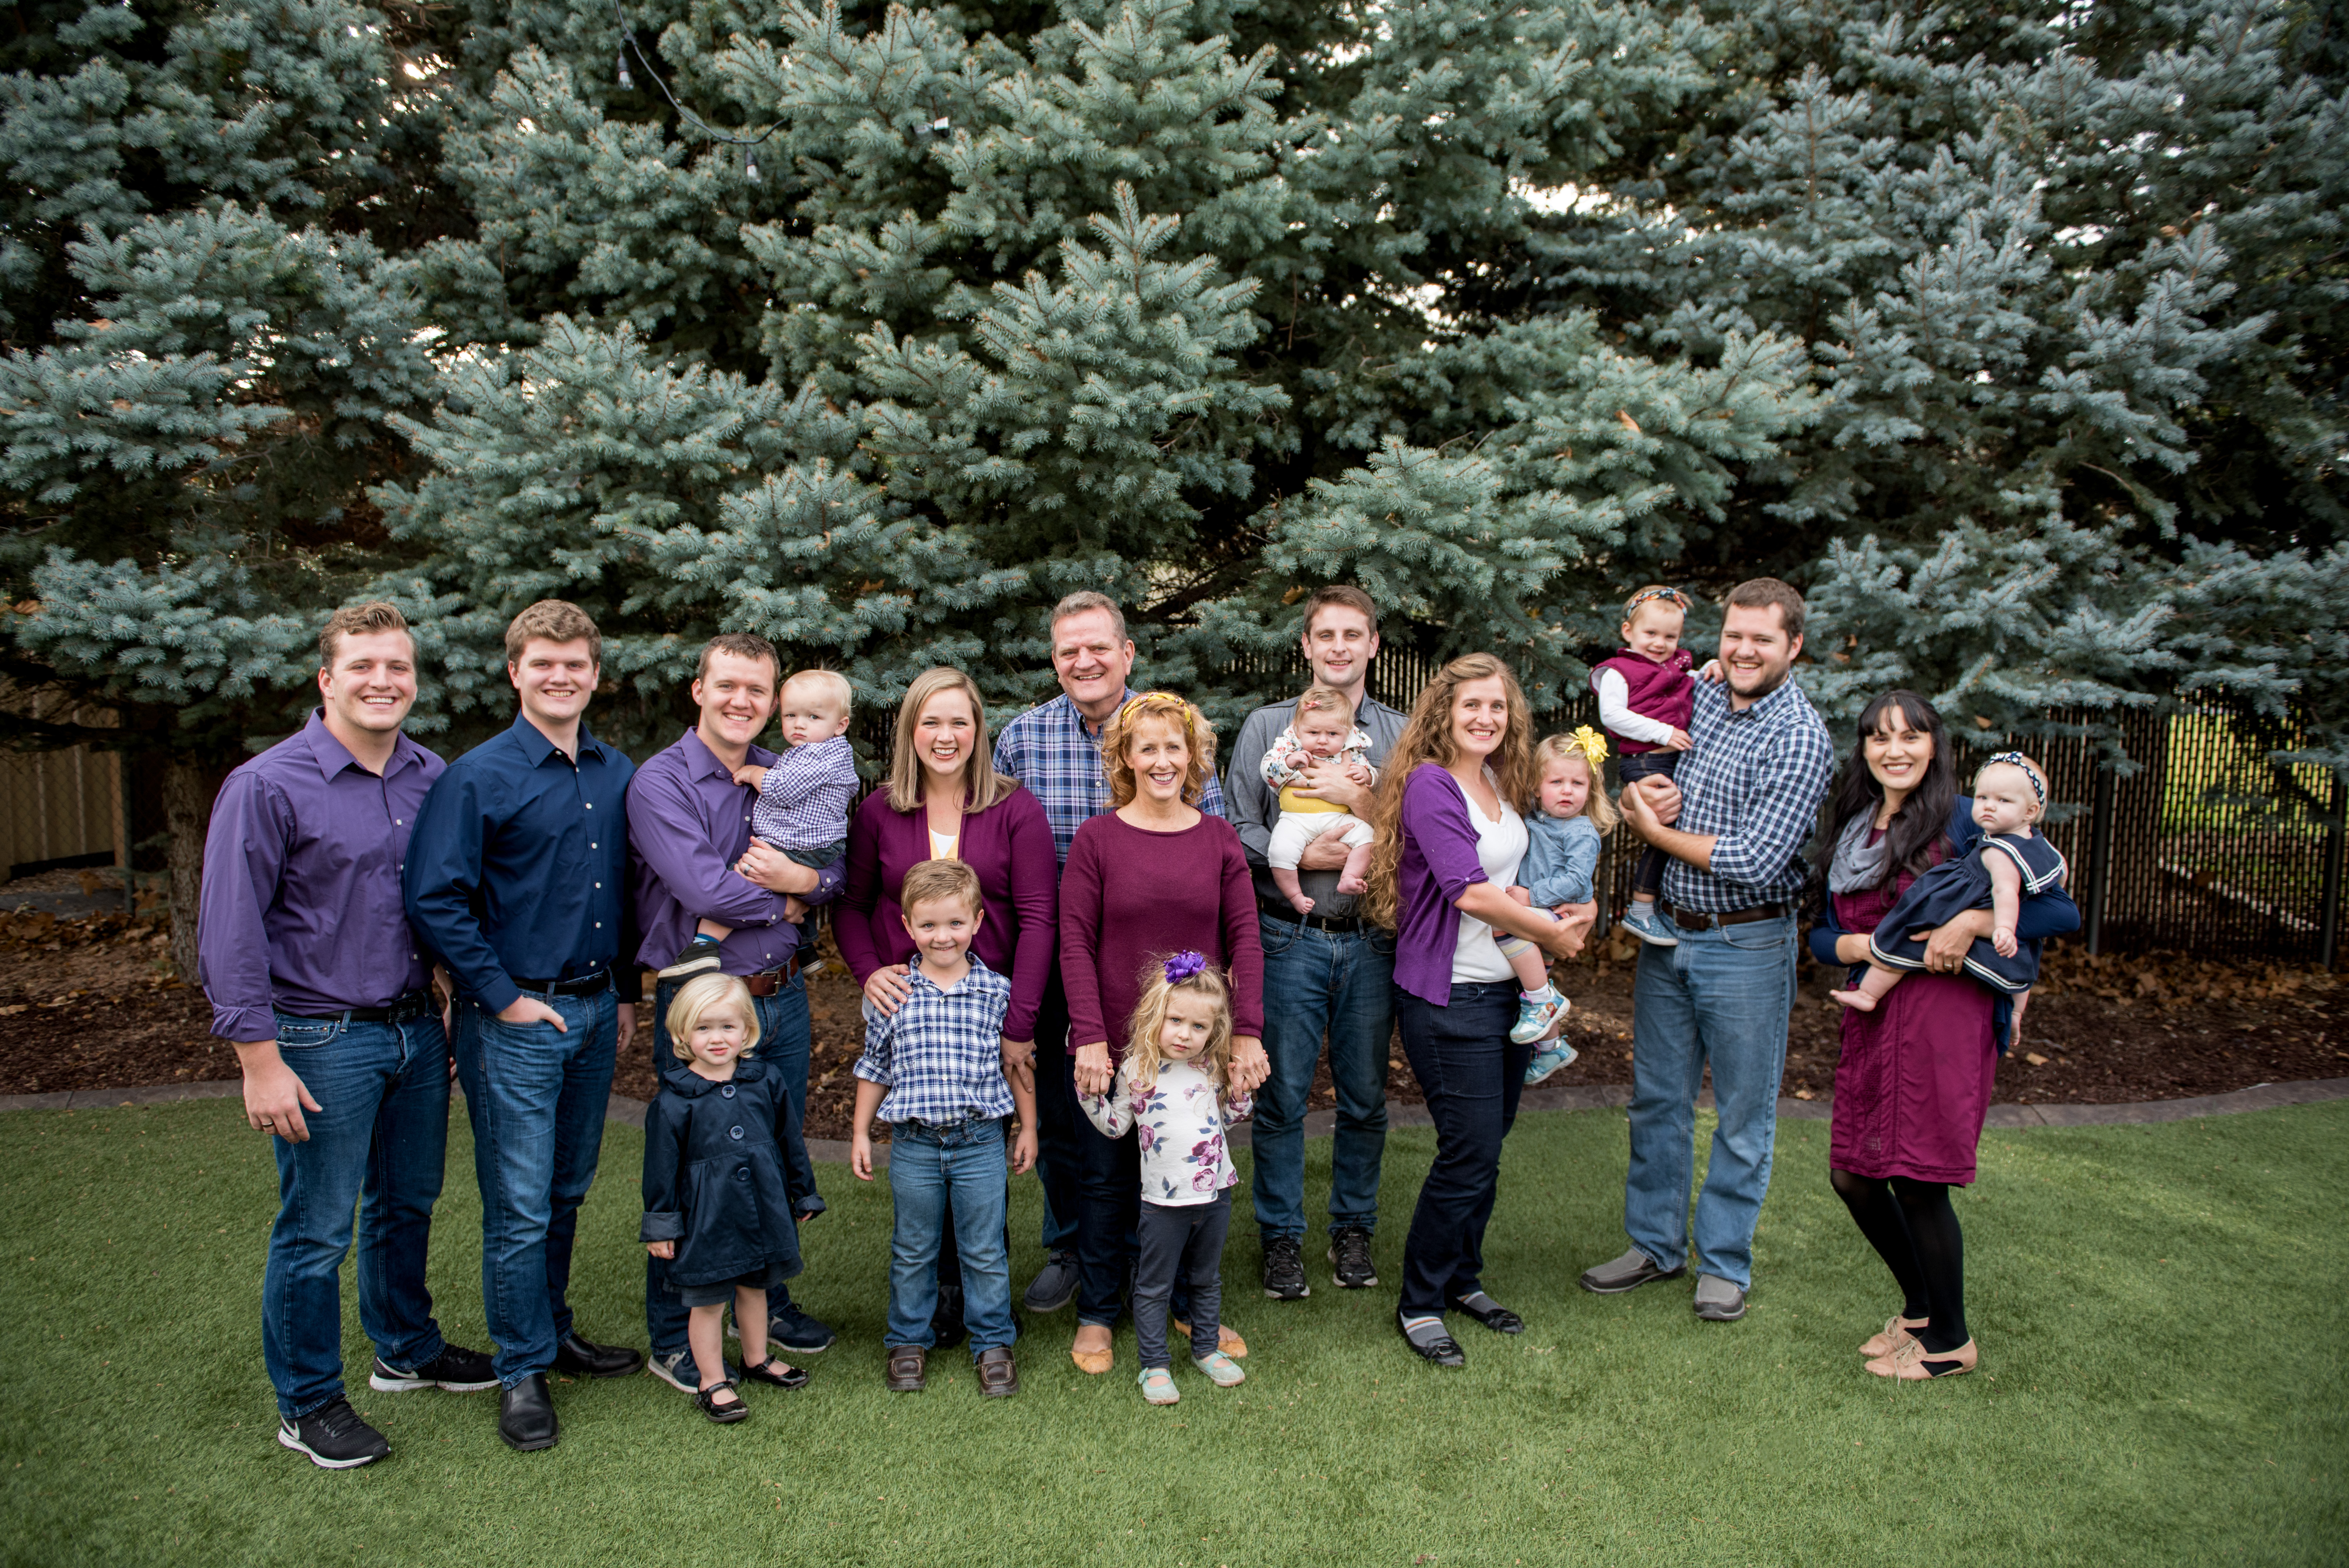 The Story Behind This Viral Family Photo Will Give You Chills